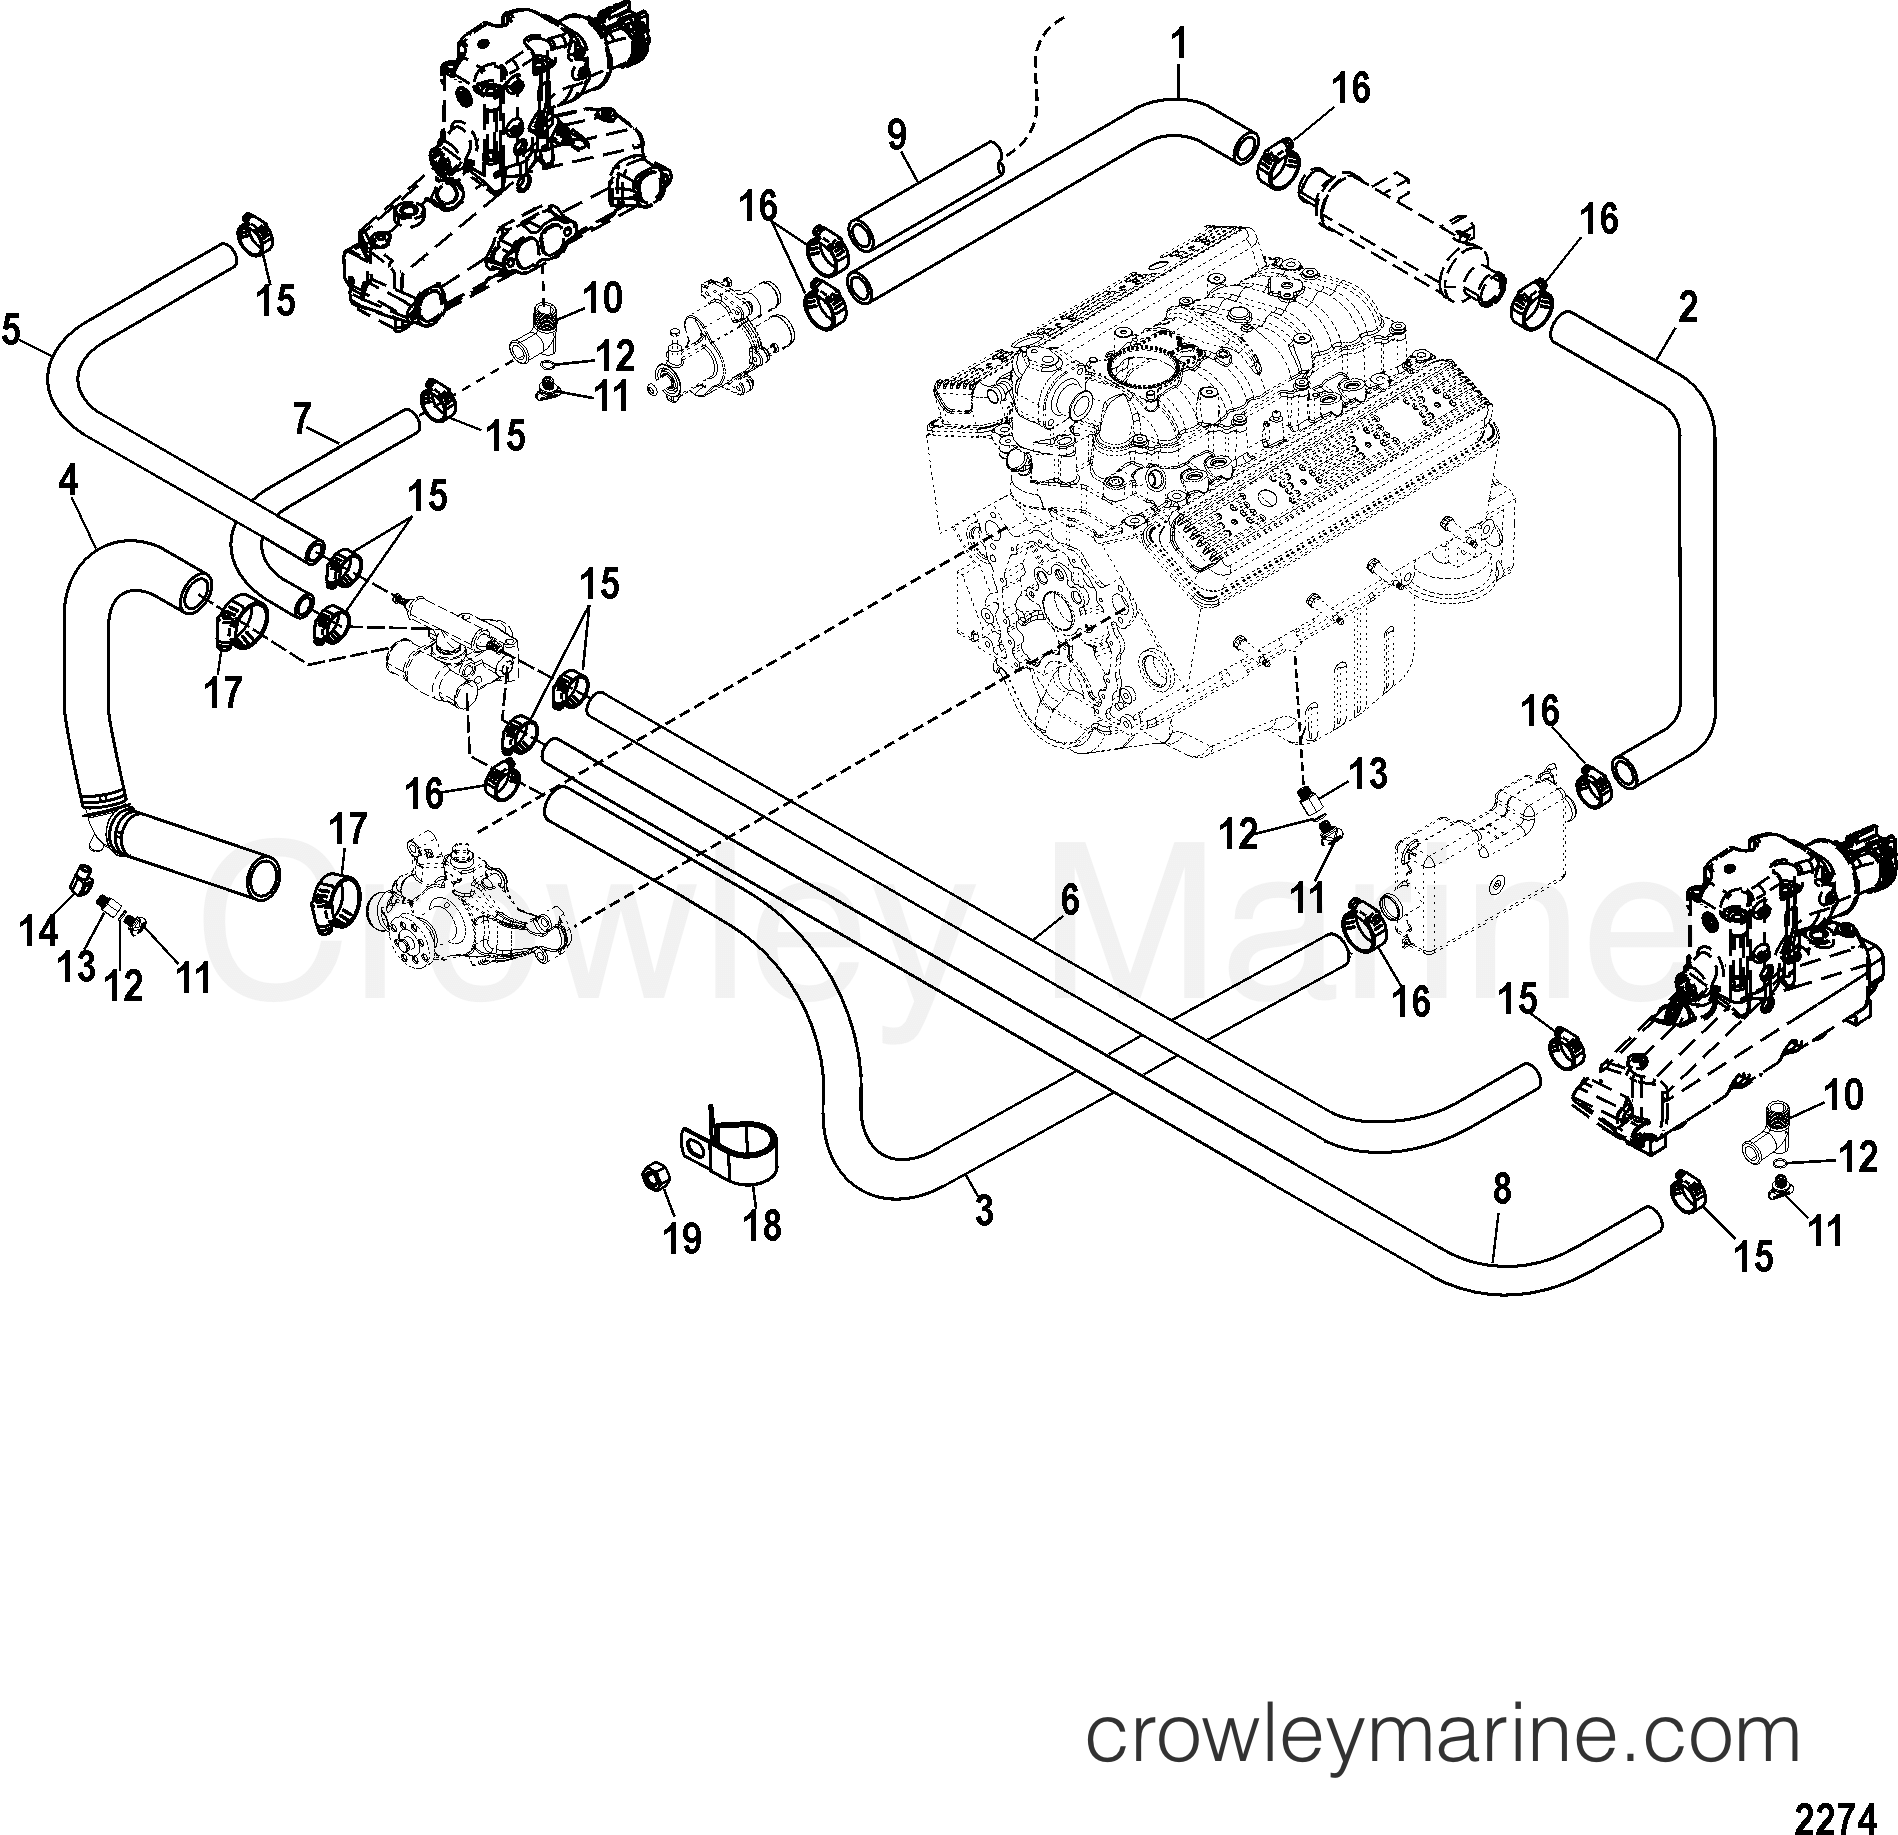 Wiring Diagram For Jet Boat